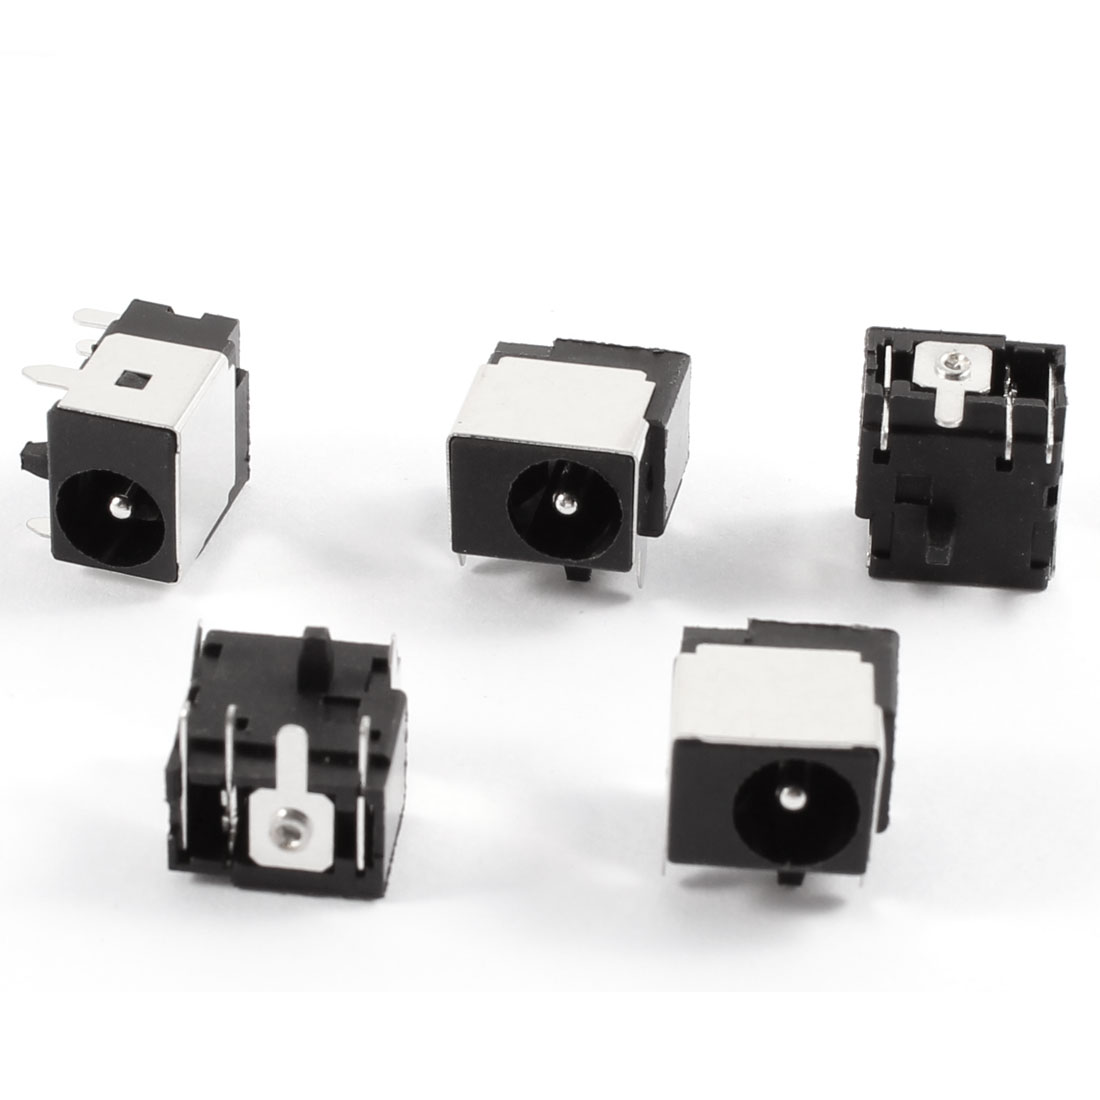 5 Pcs PJ001B DC Power Jack Connector for Acer Travelmate 622 650 800 C300